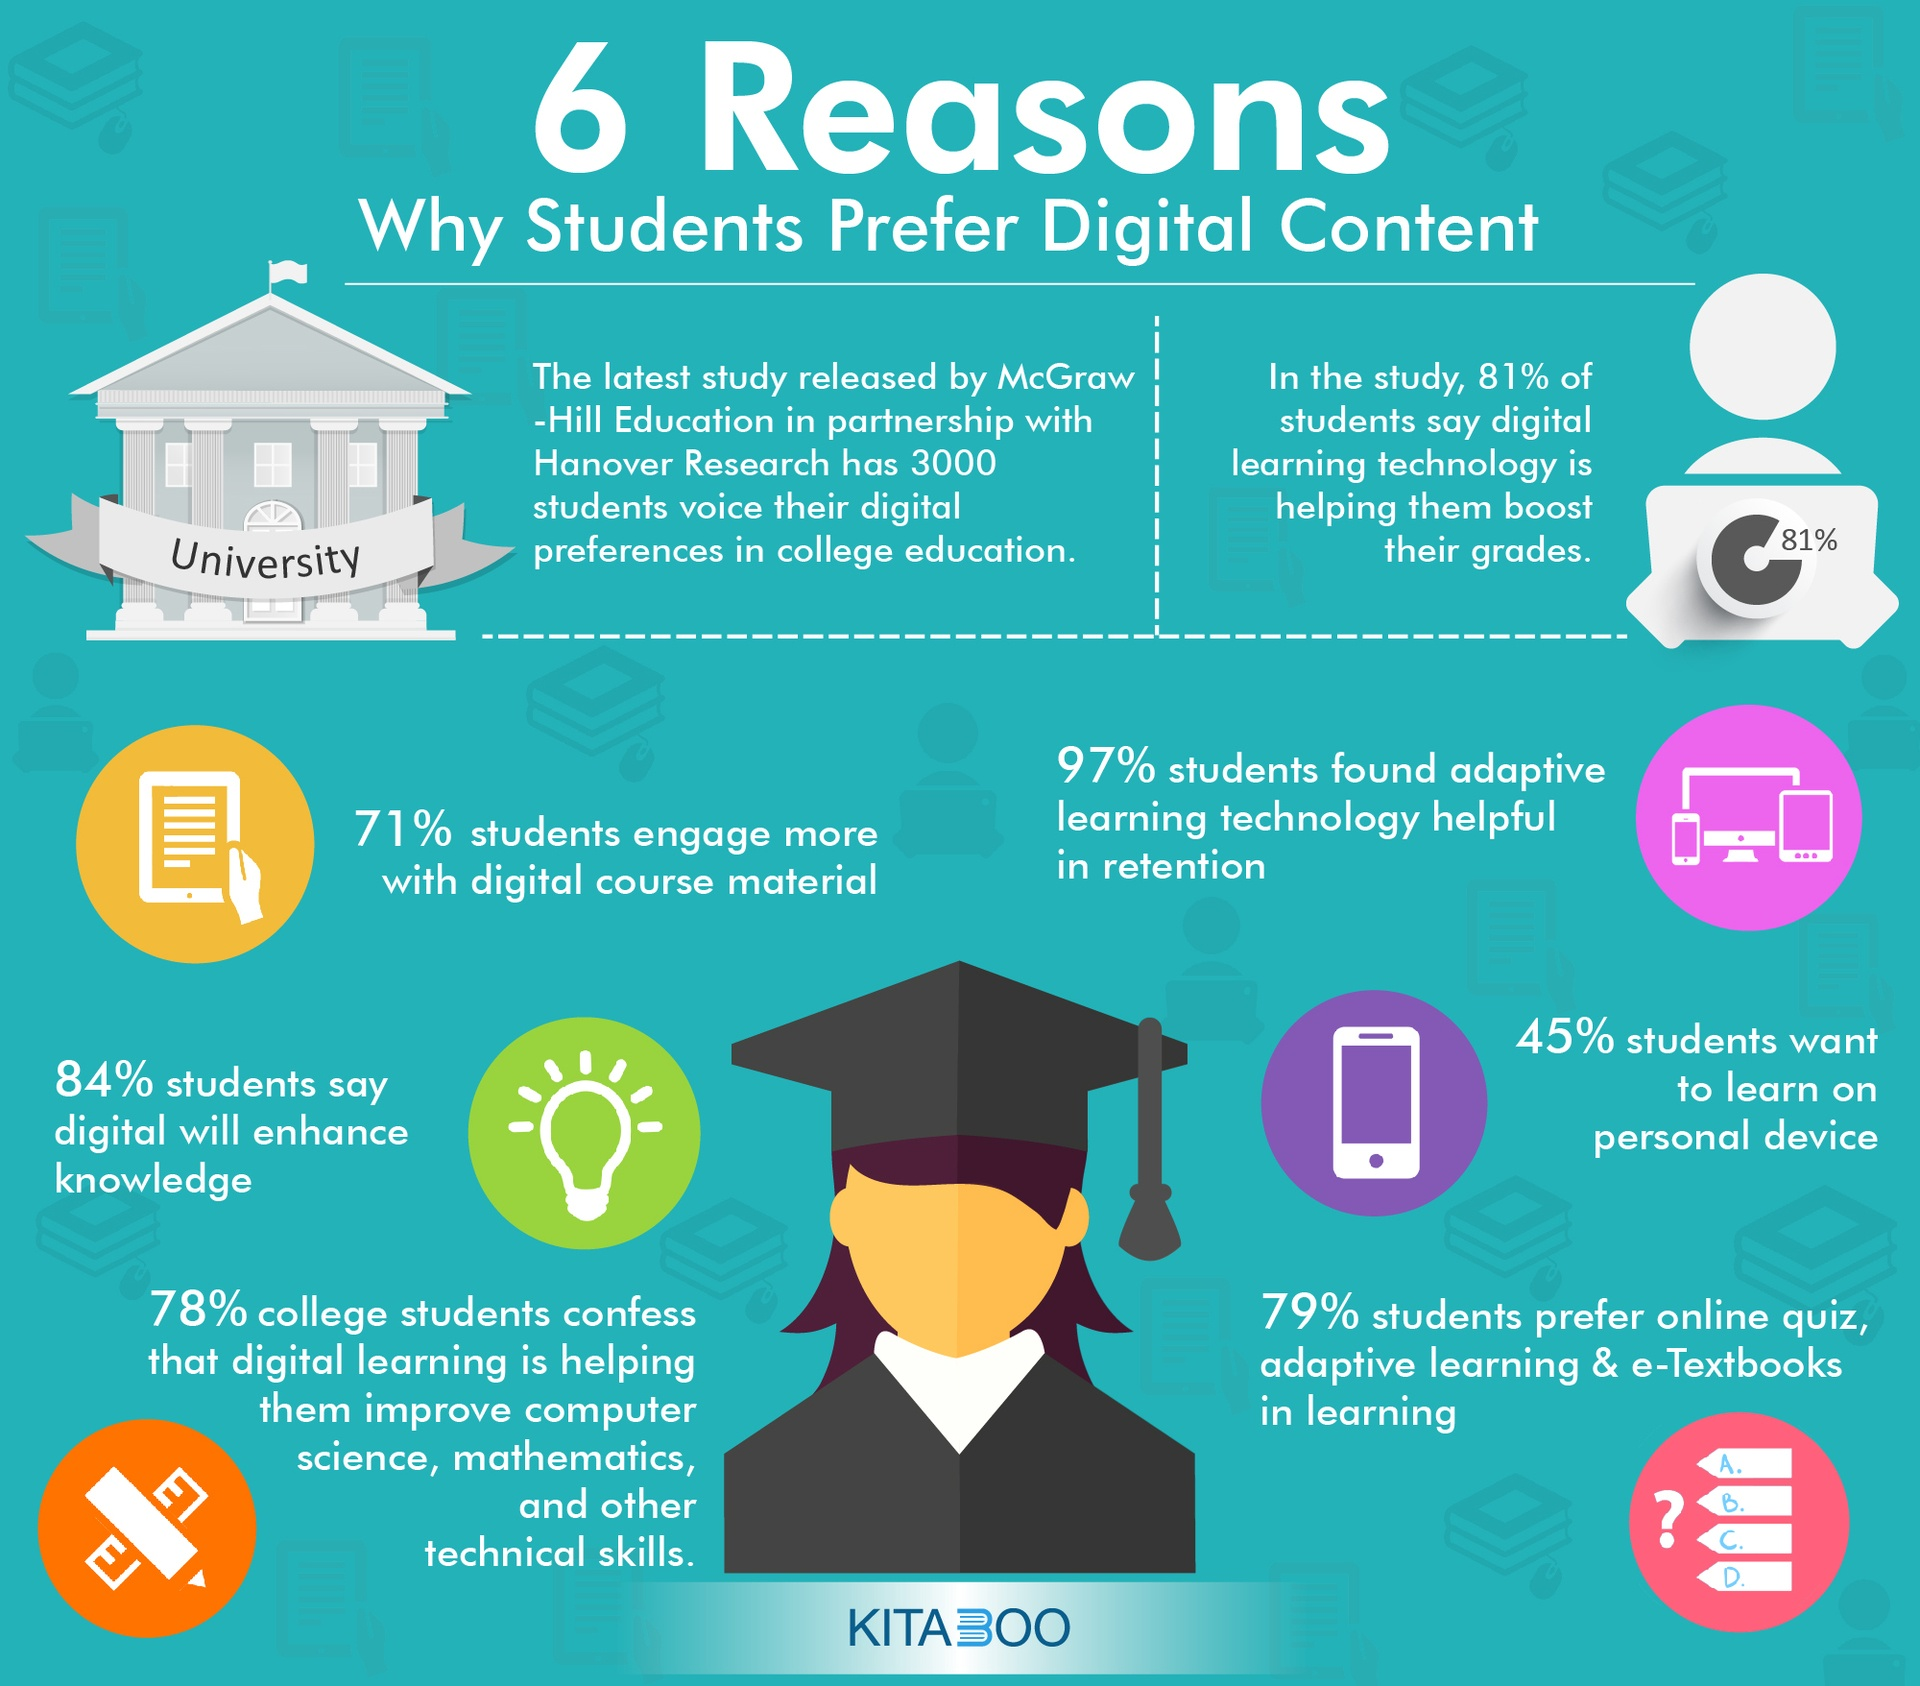 Top 6 Reasons Why Students Prefer Digital Content – Infographic